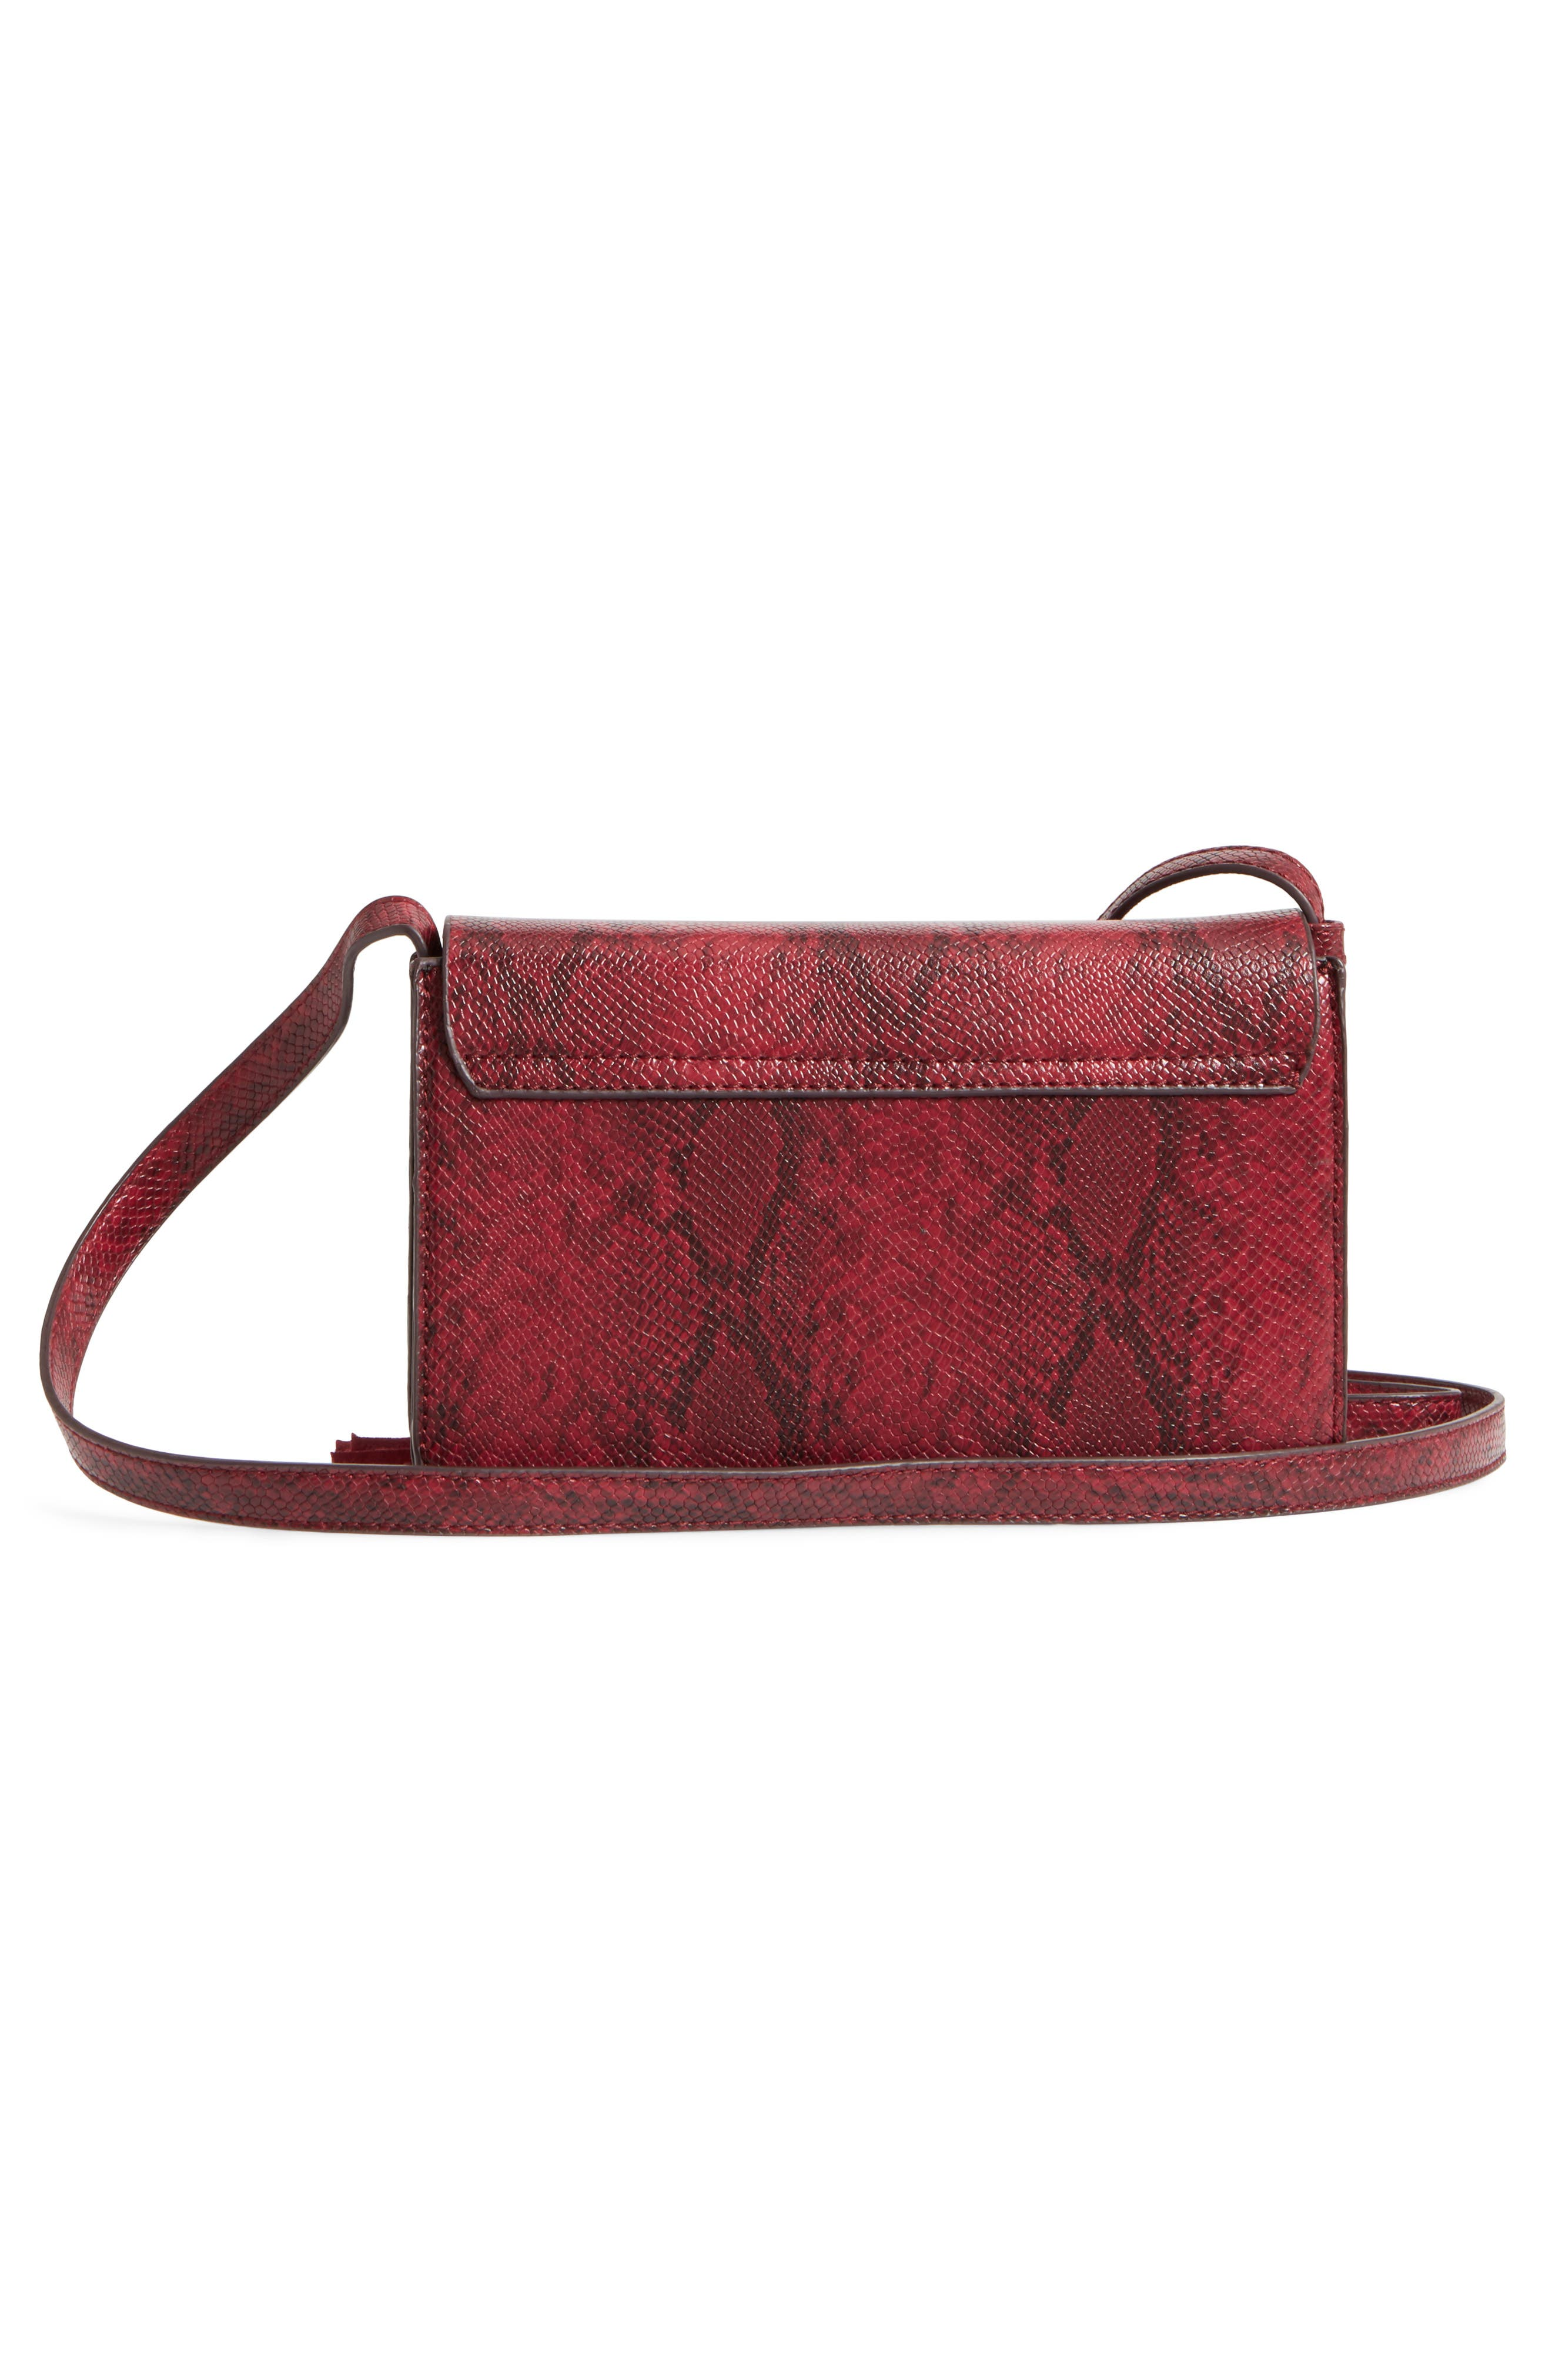 Alternate Image 3  - Street Level Snake Embossed Faux Leather Crossbody Bag